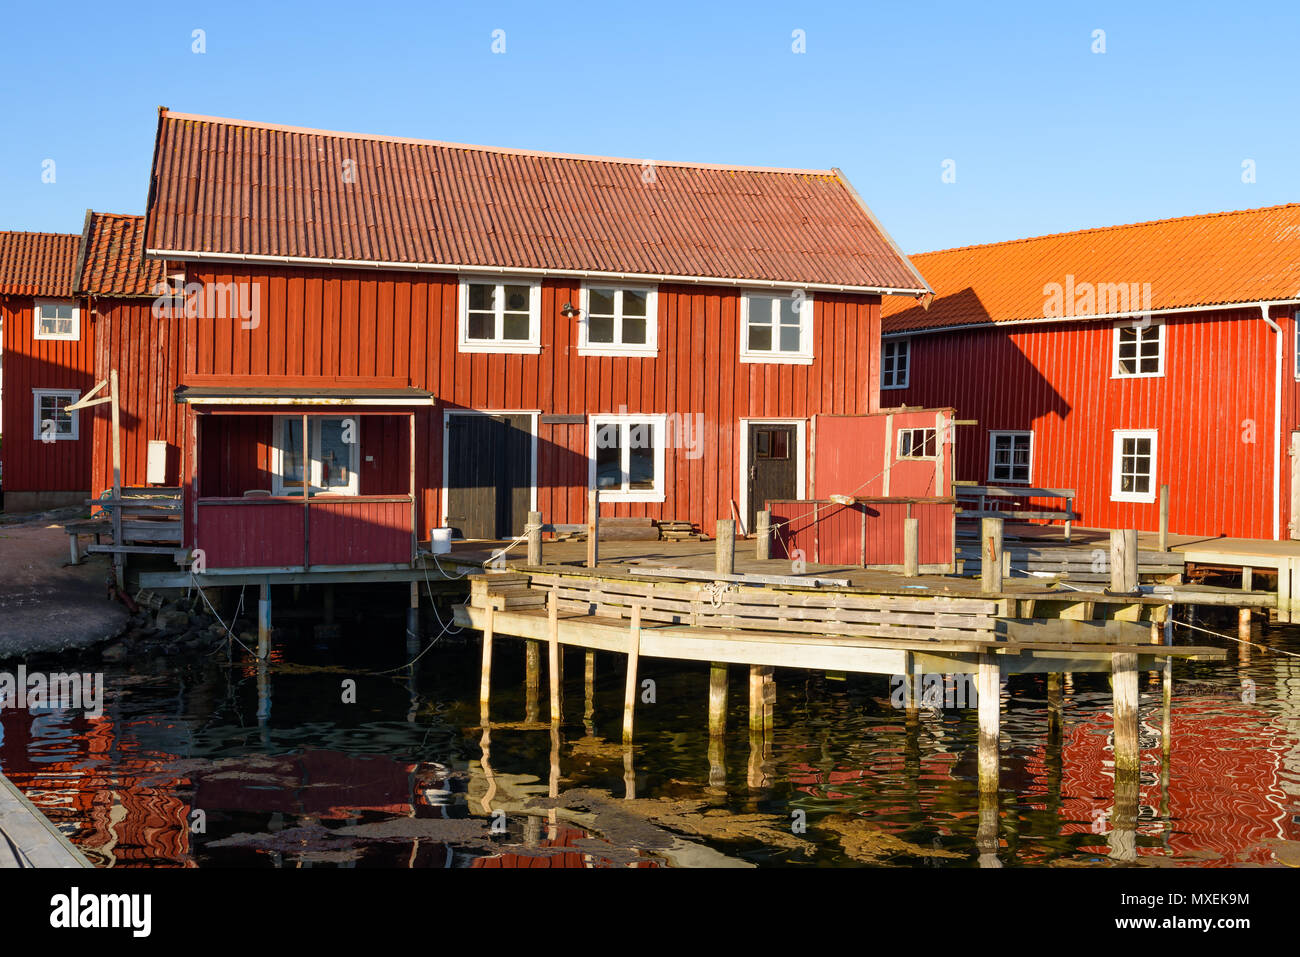 Old wooden buildings in the harbor district of the seaside village of Mollosund on Orust, Sweden. - Stock Image